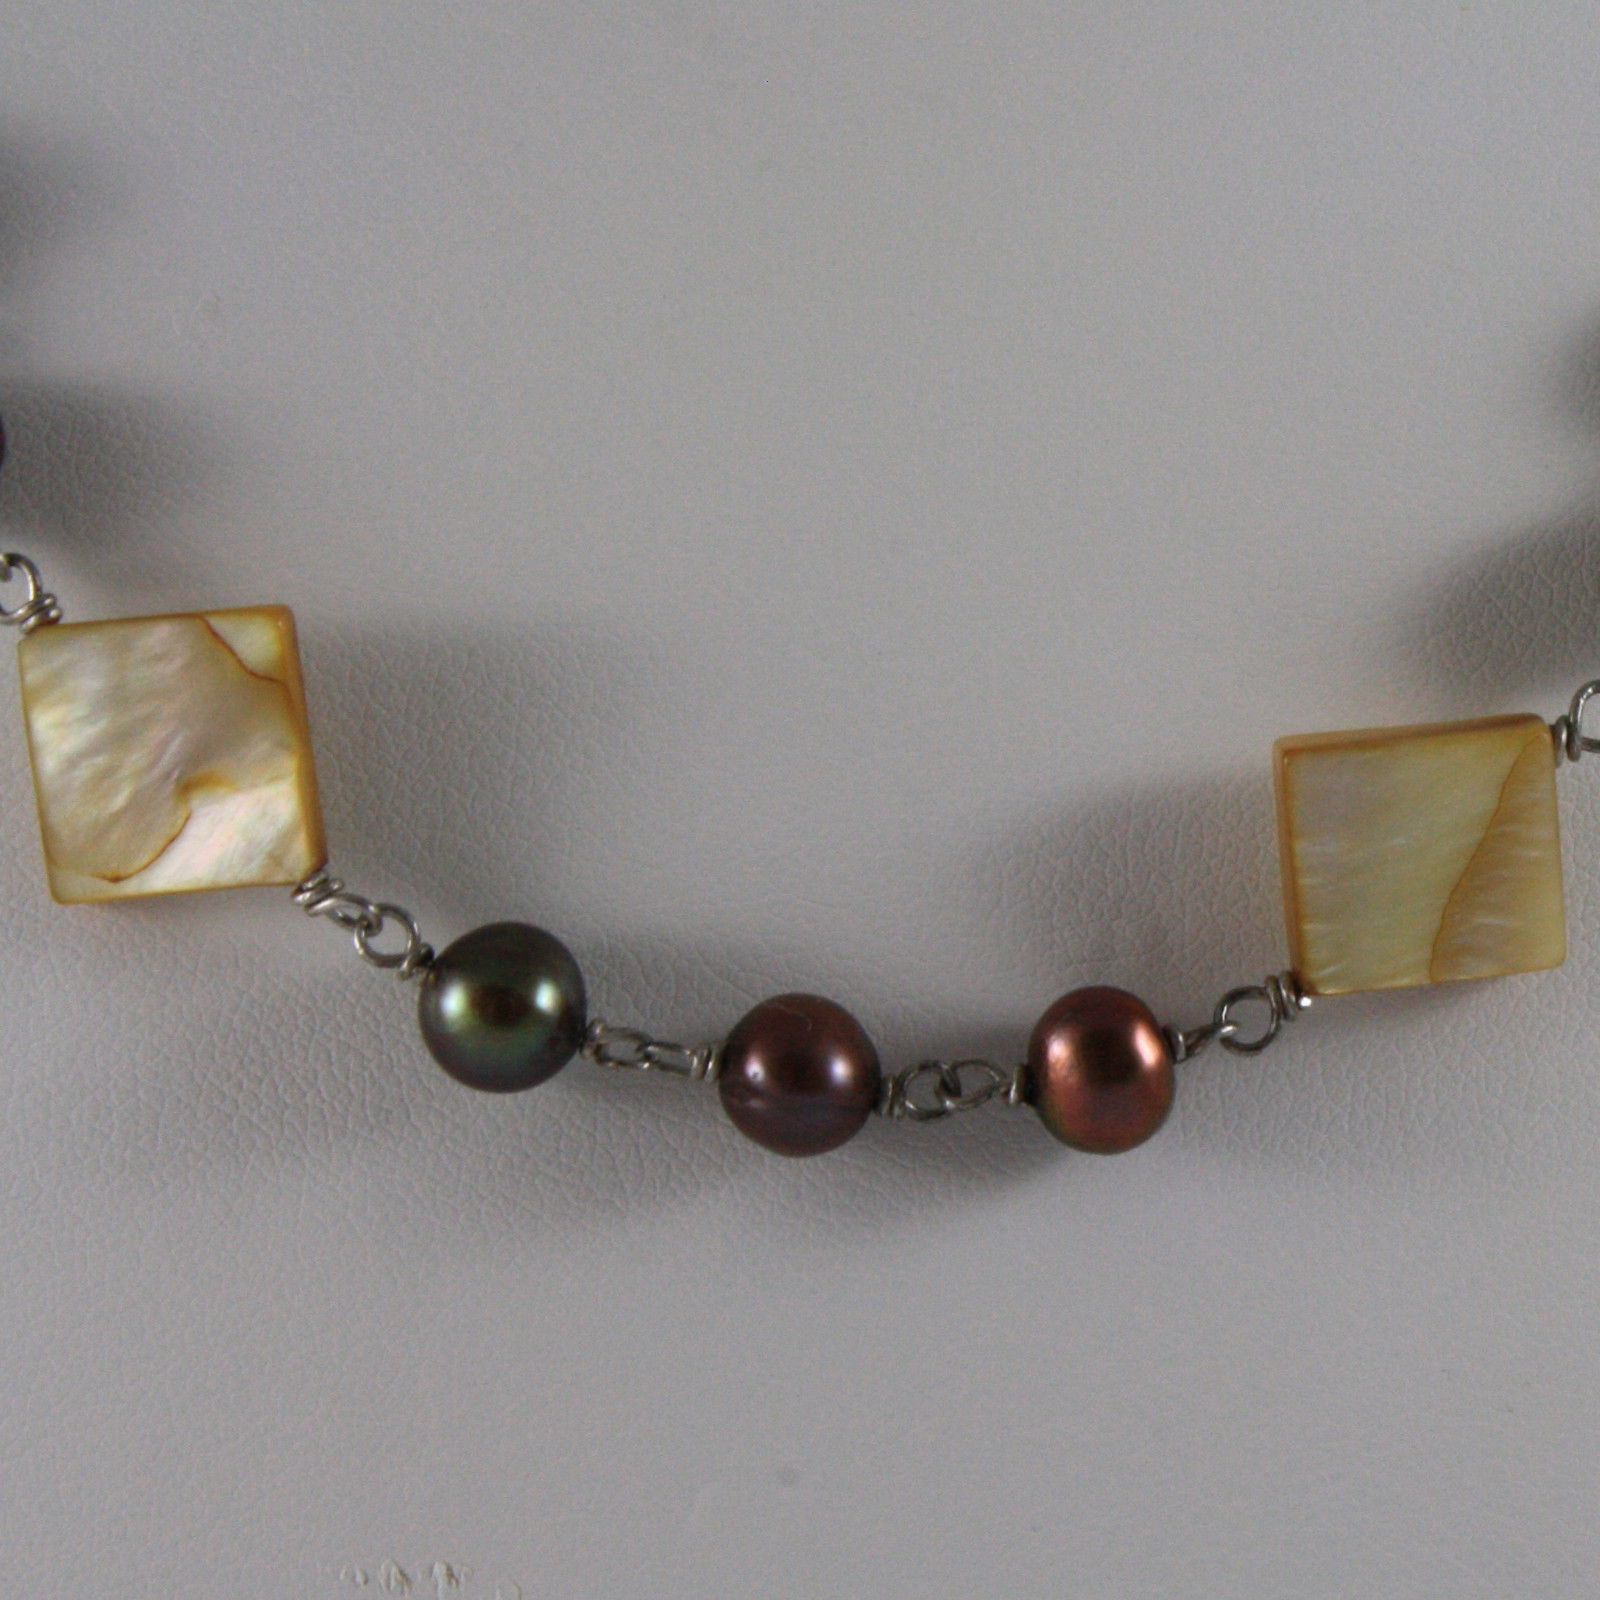 .925 SILVER RHODIUM NECKLACE WITH BROWN PEARLS AND YELLOW MOTHER OF PEARL